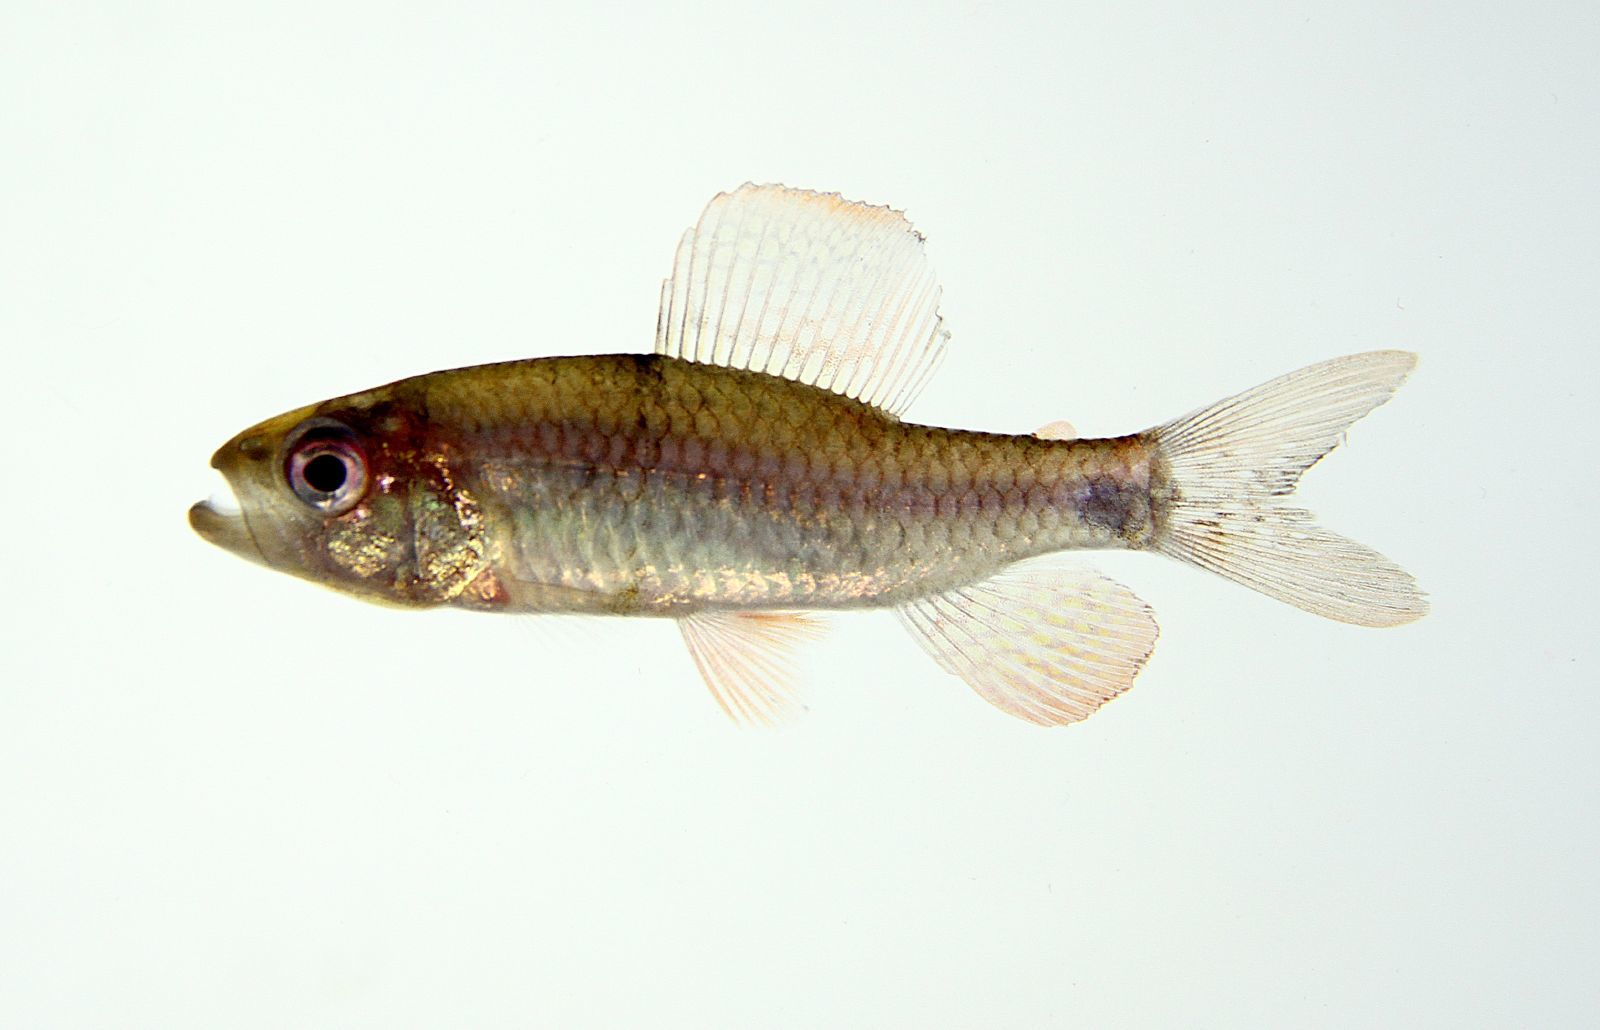 Image of Sailfin characin